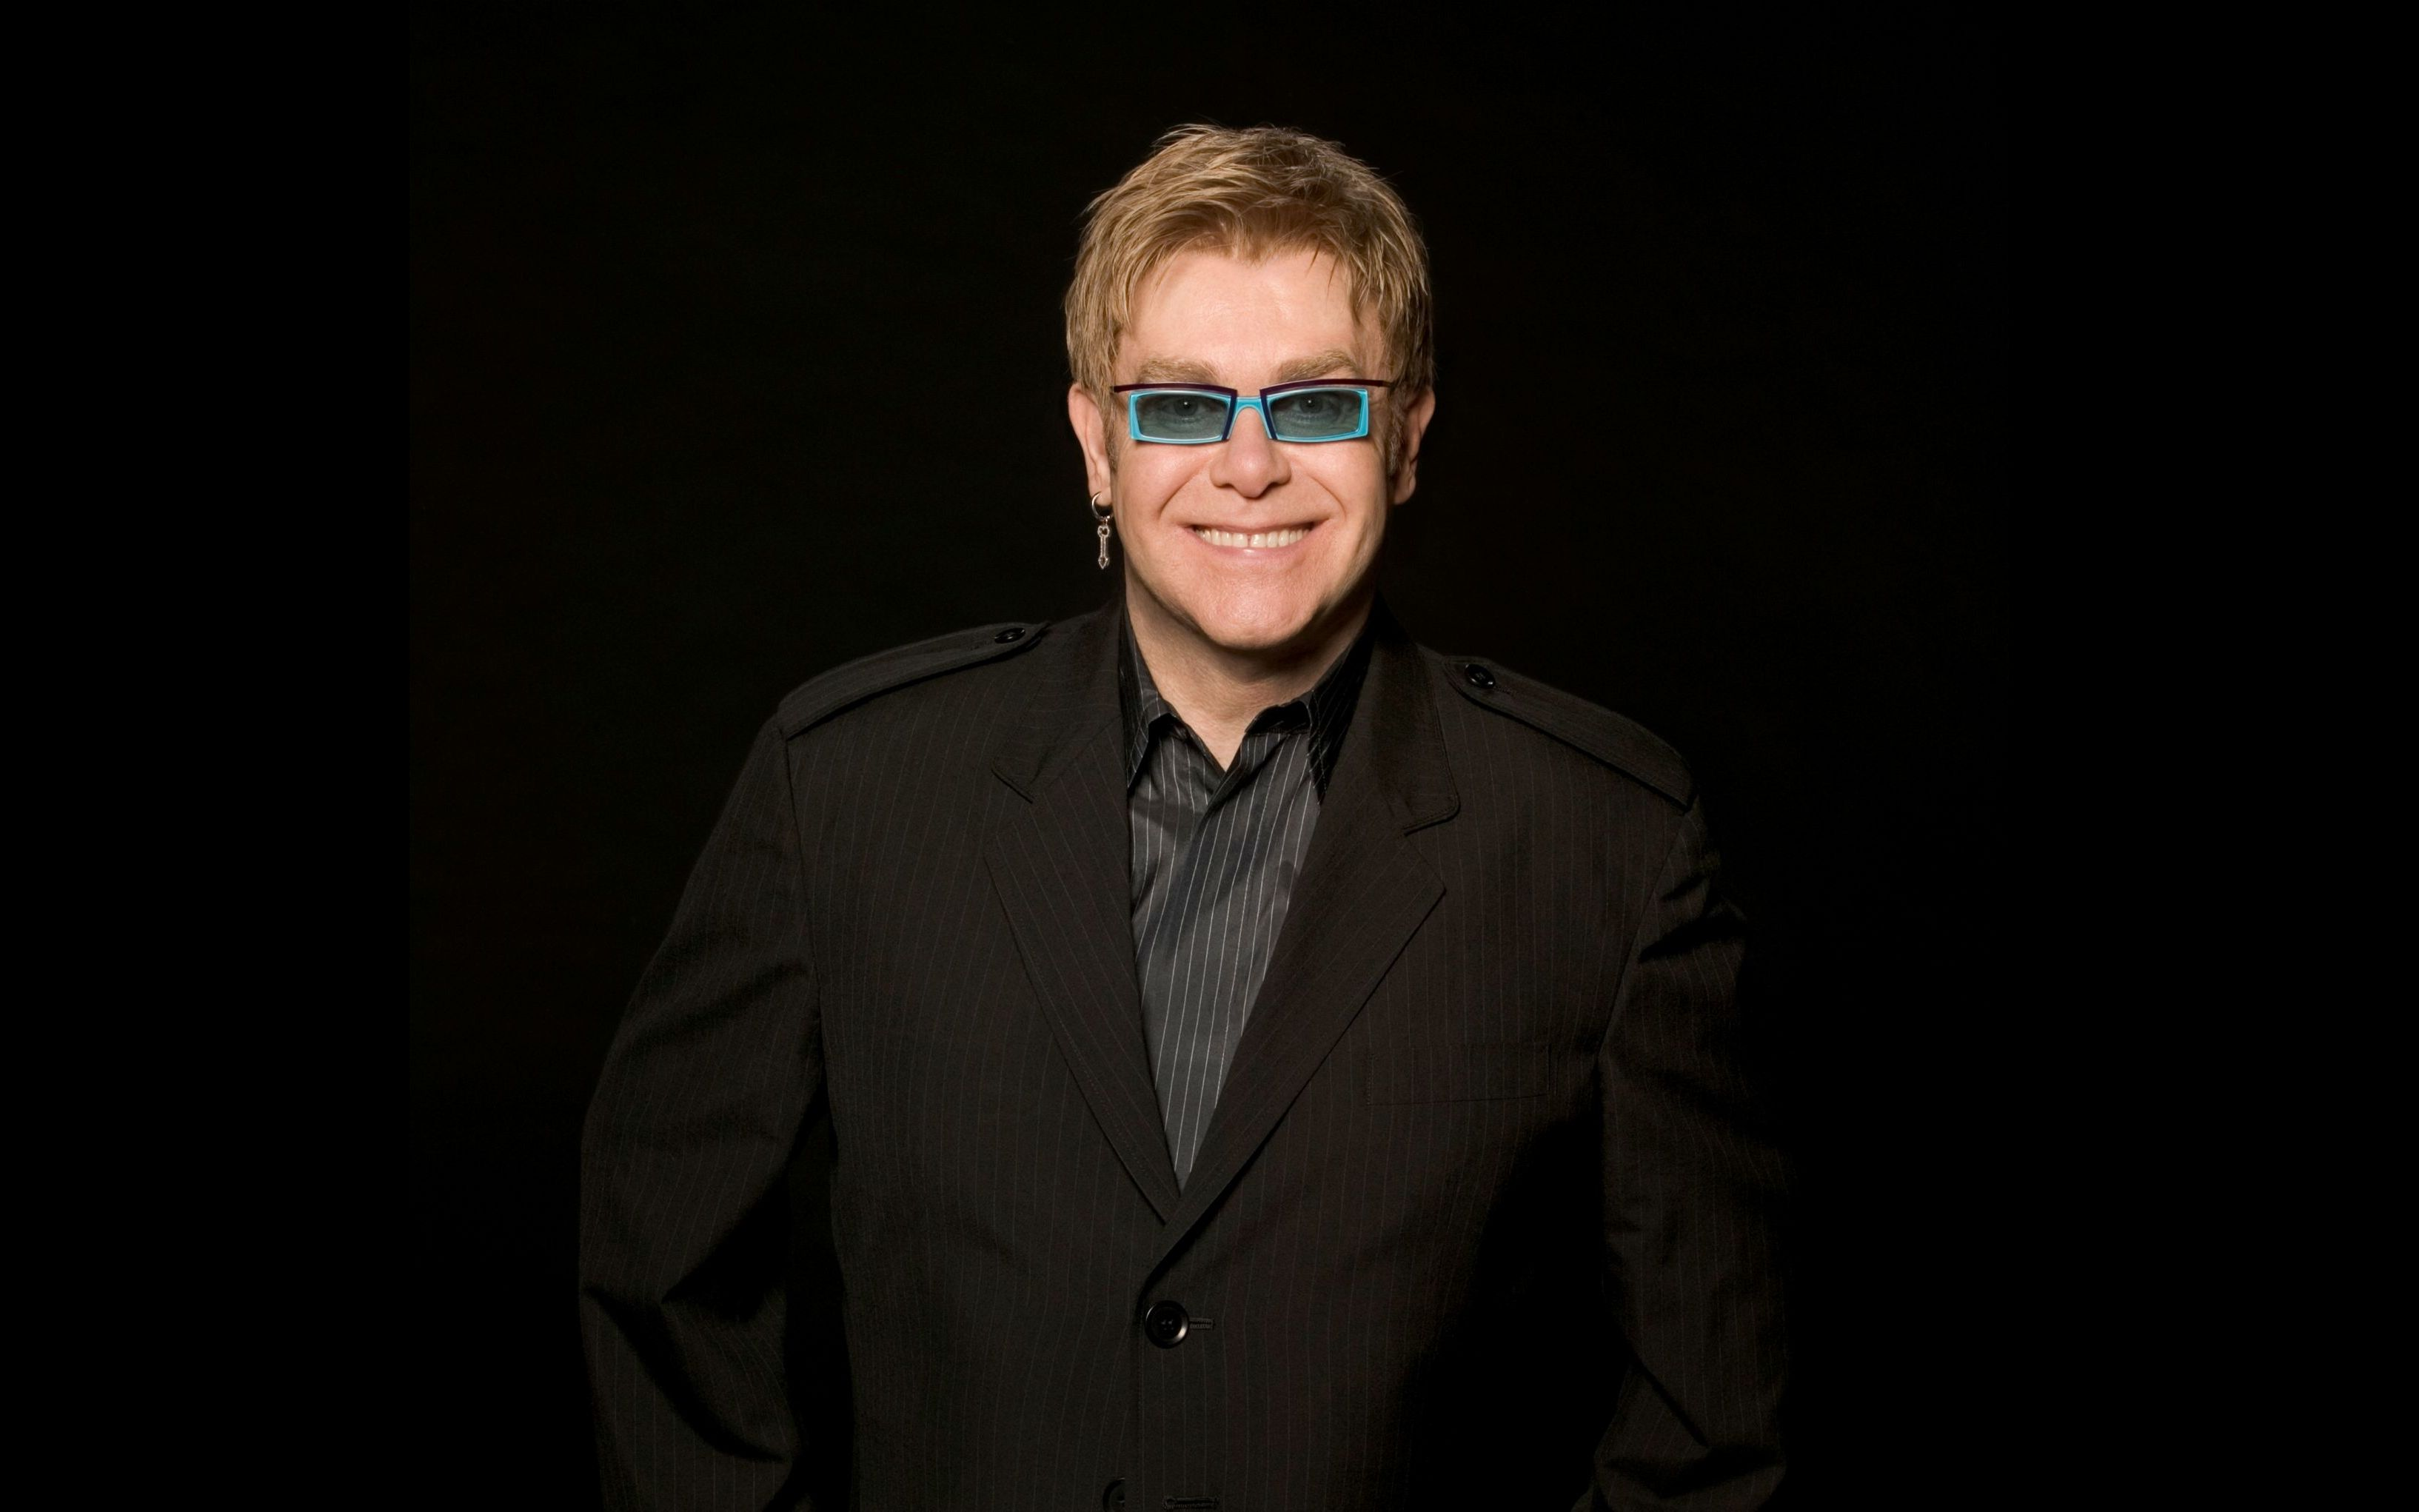 Images Elton John Music Celebrities 3267x2042